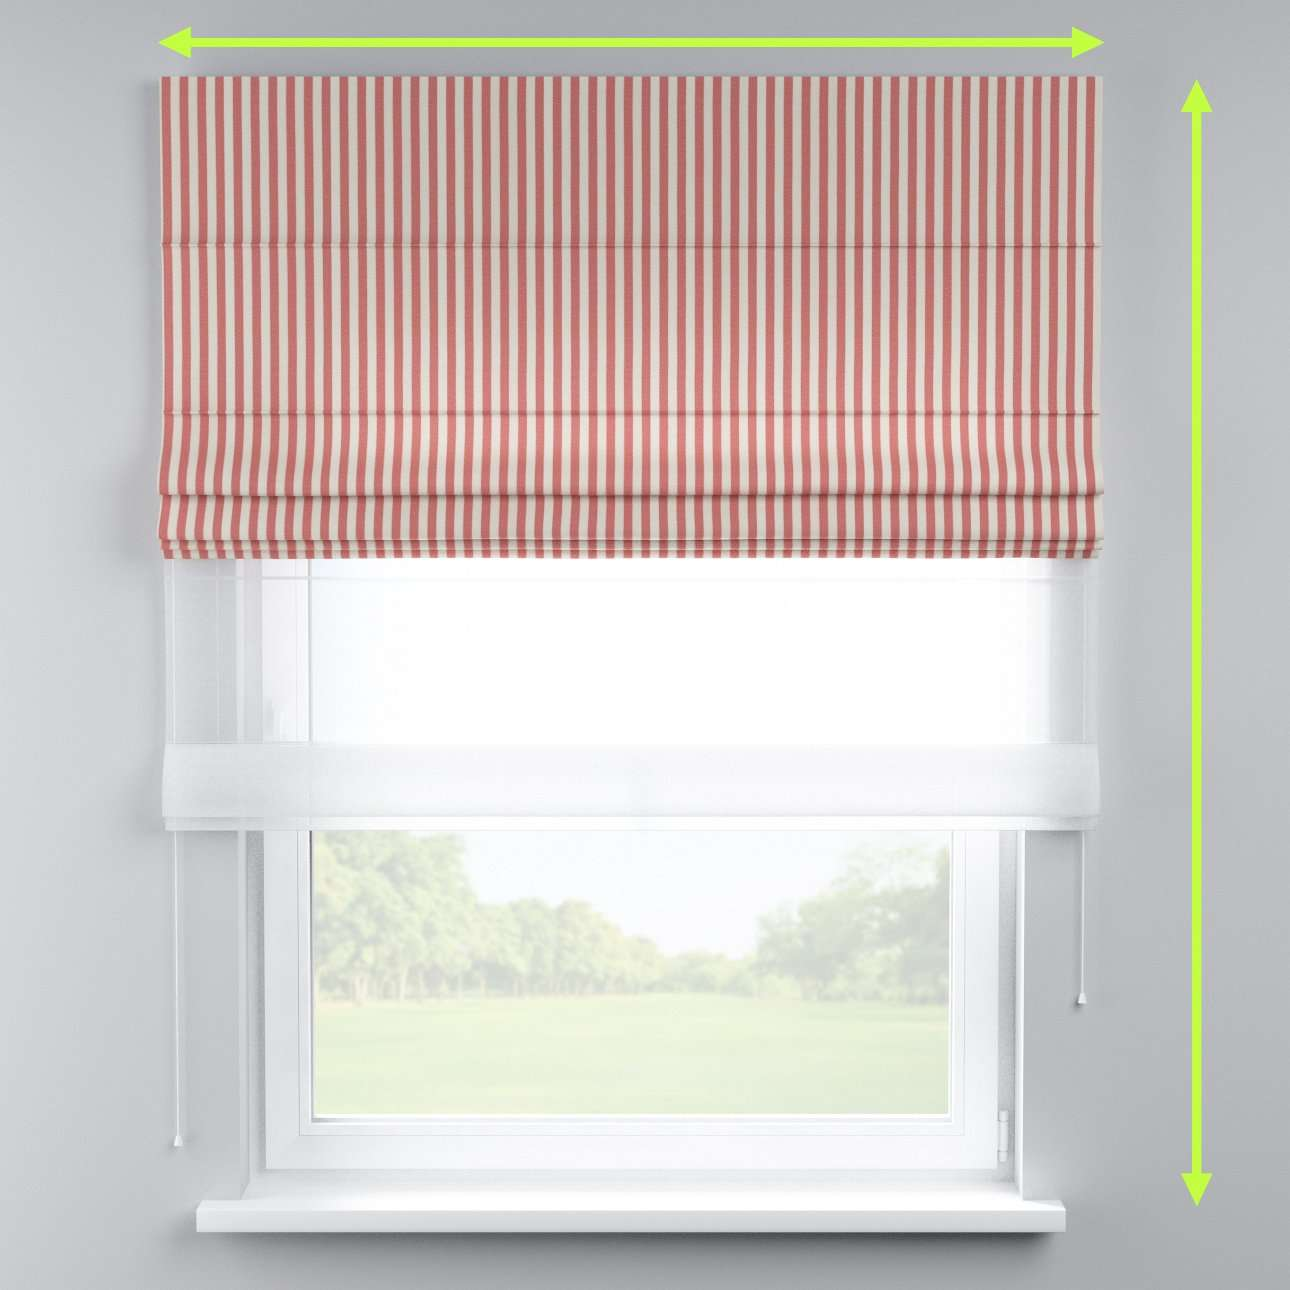 Voile and fabric roman blind (DUO II) in collection Quadro, fabric: 136-17